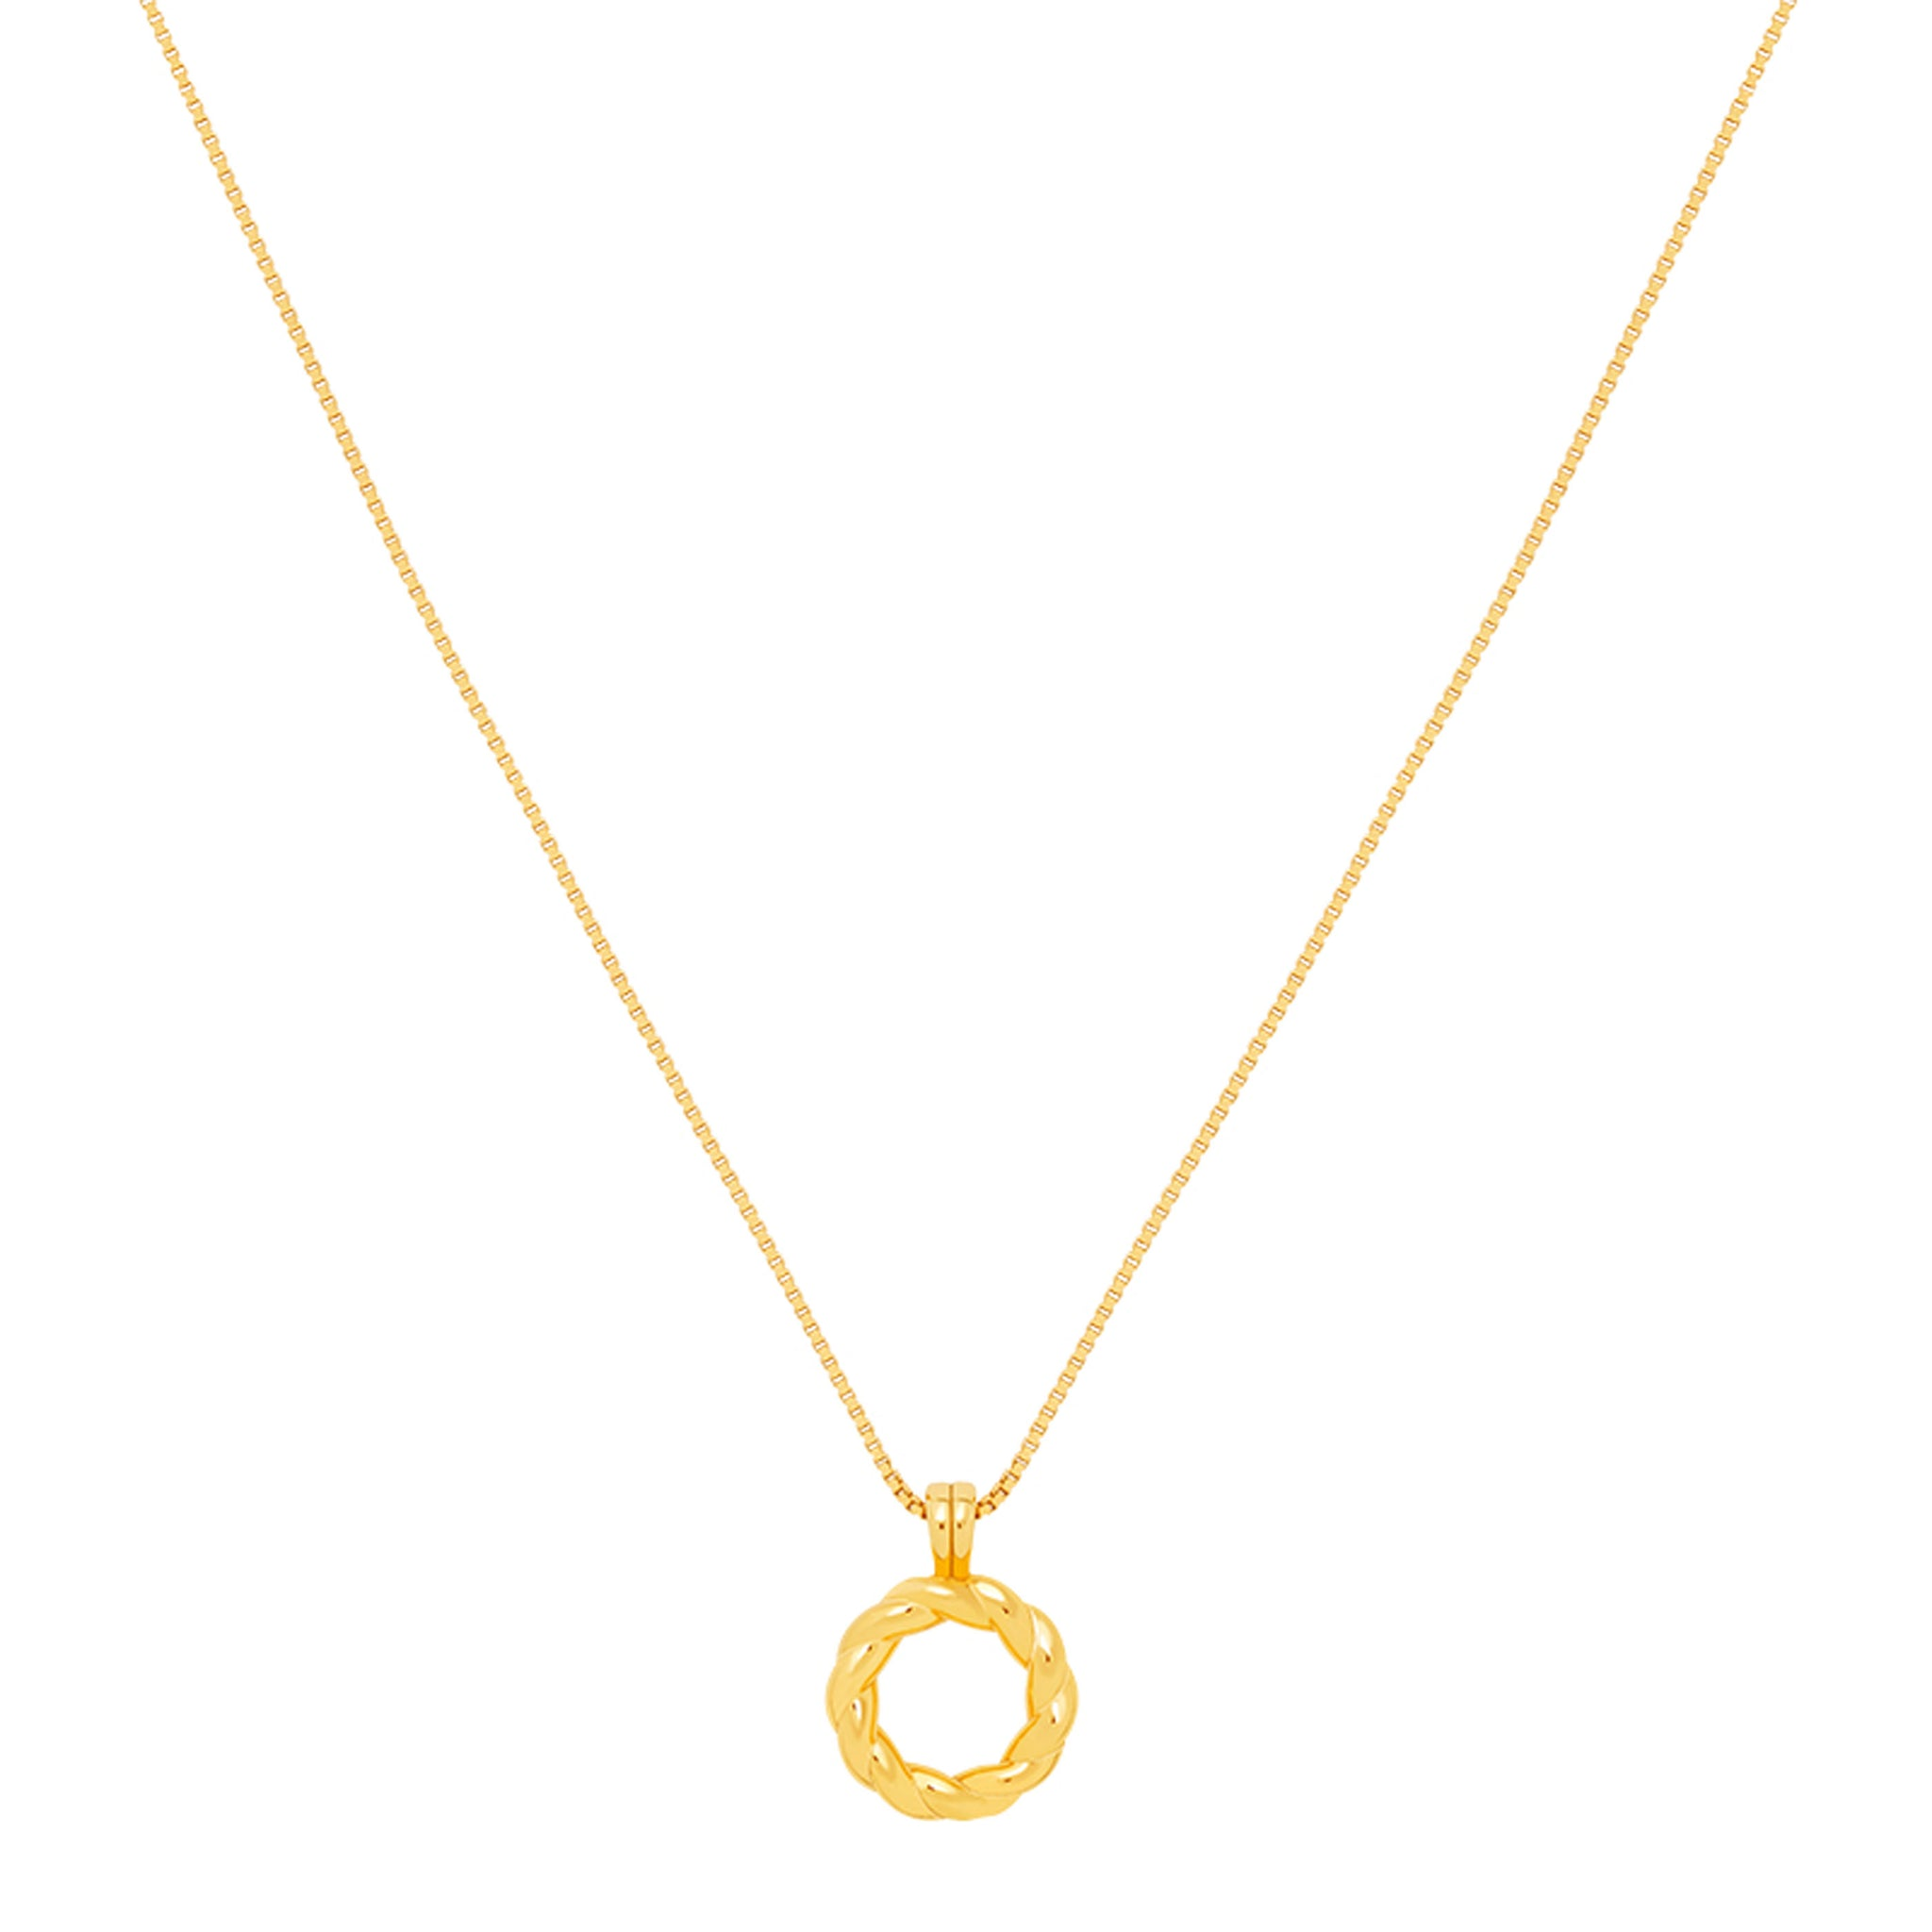 Rope Ring Pendant Necklace in Gold